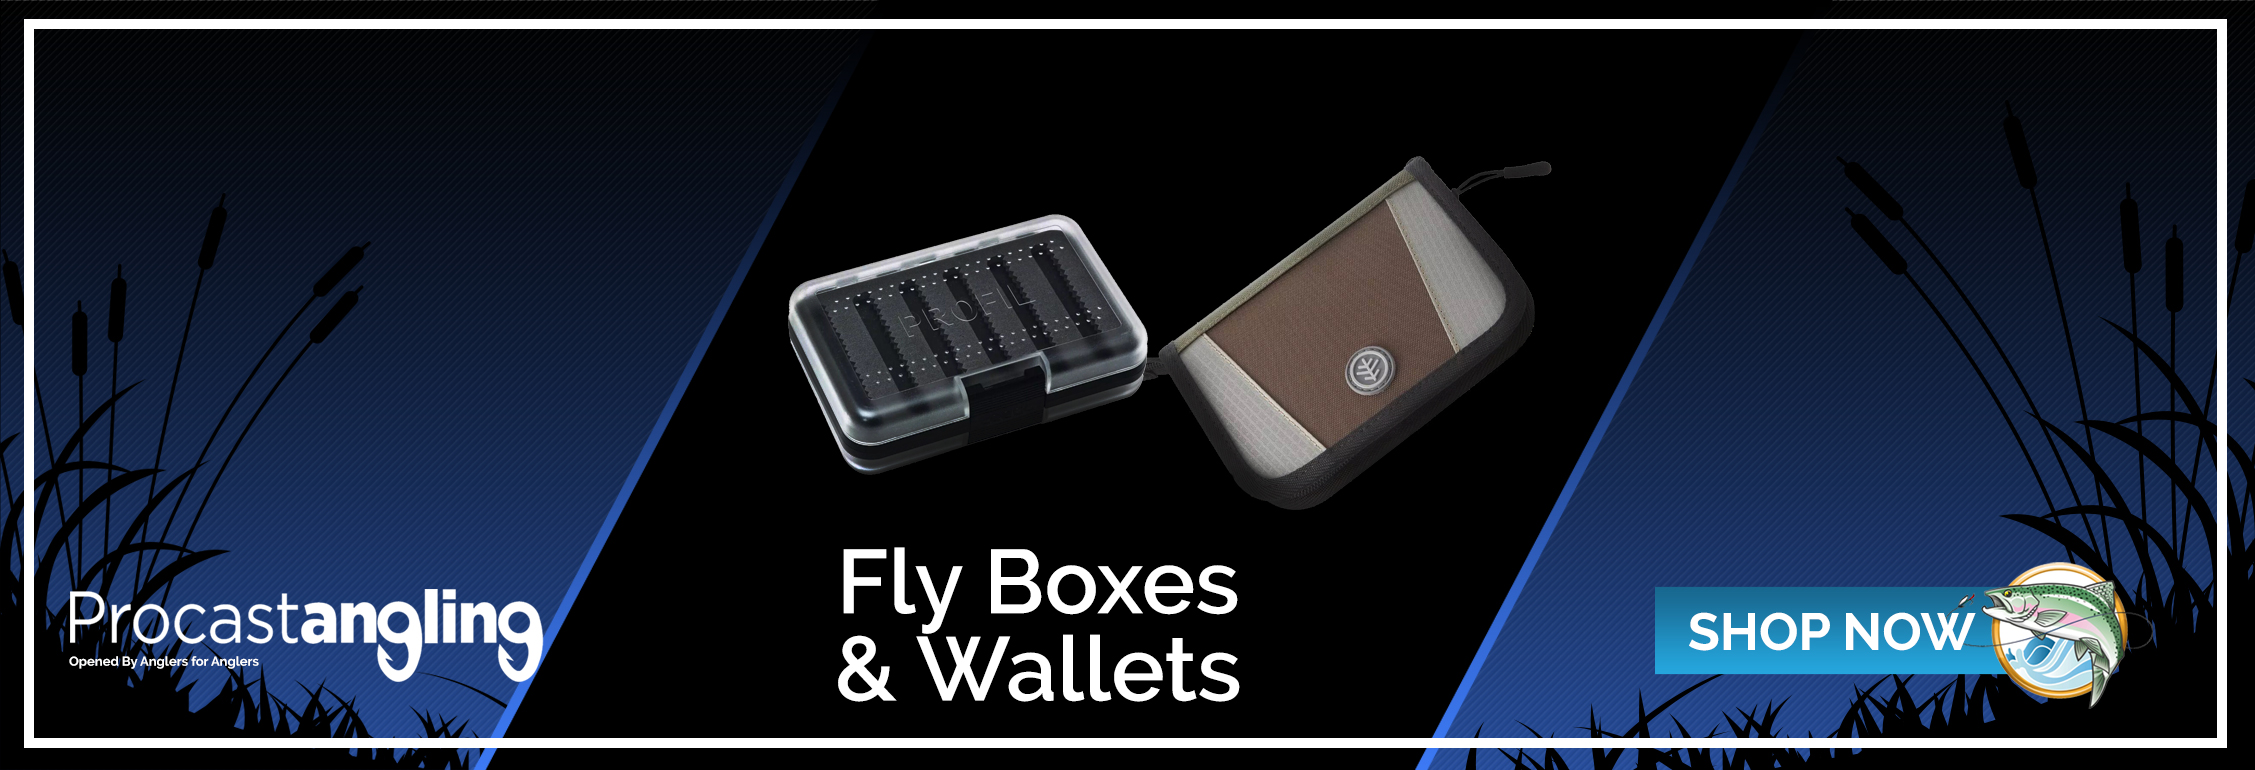 FLY BOXES & WALLETS